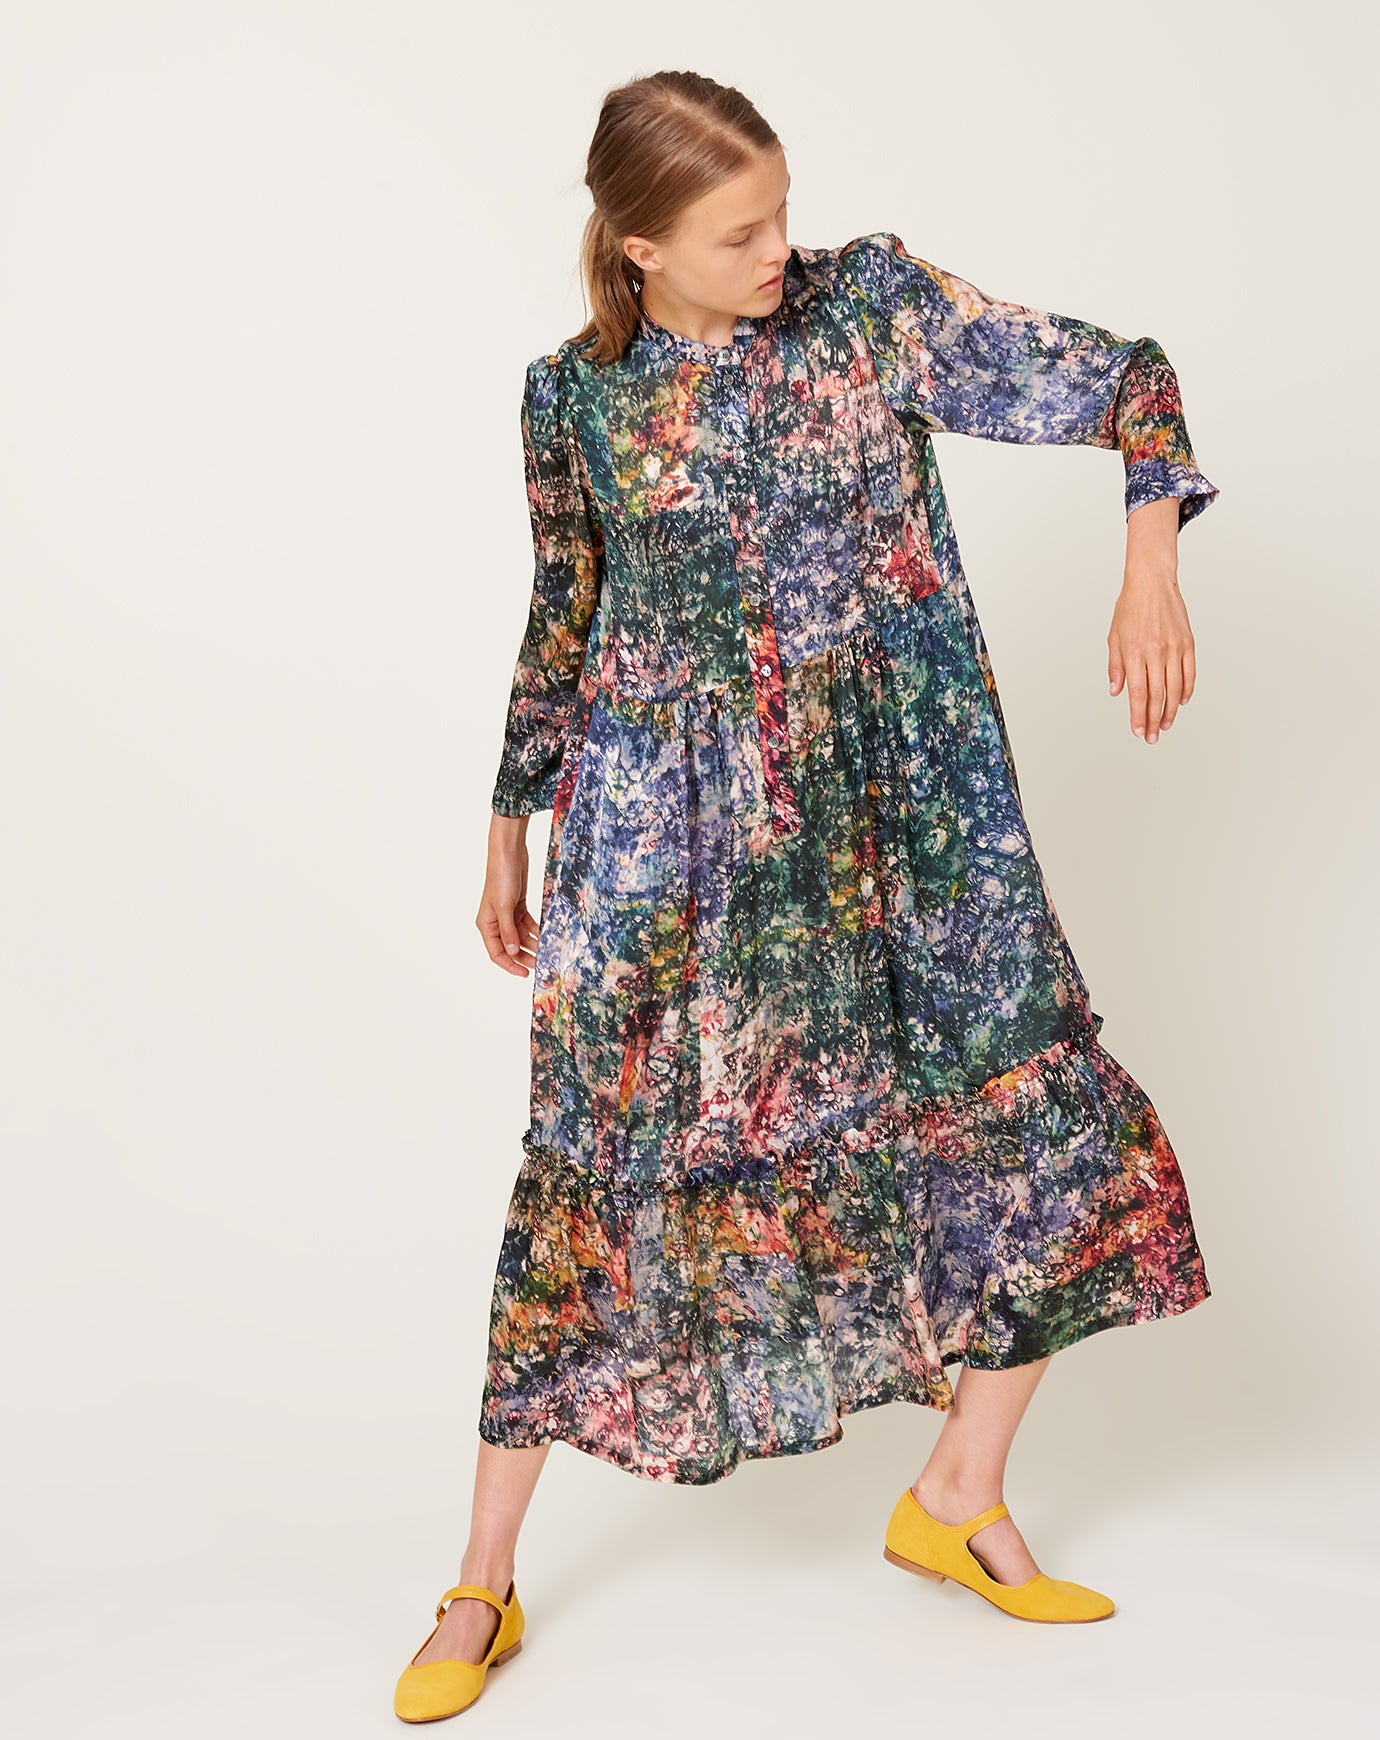 Twila Dress in Teal Gara Flower